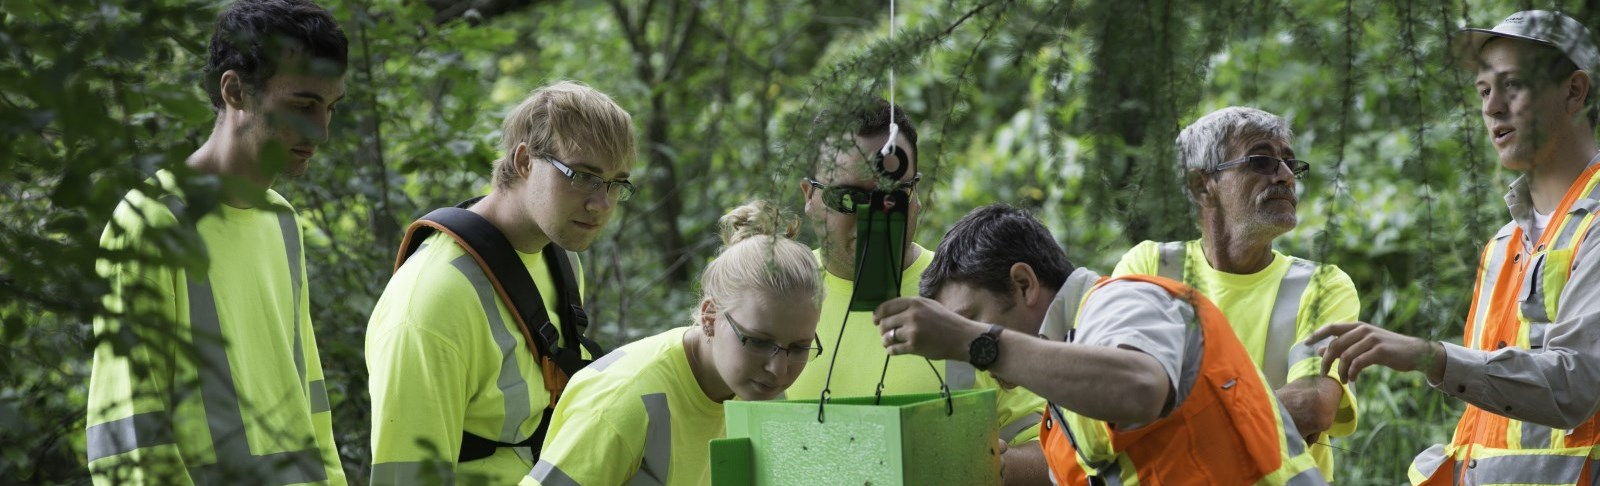 Forest staff demonstrating equipment to students